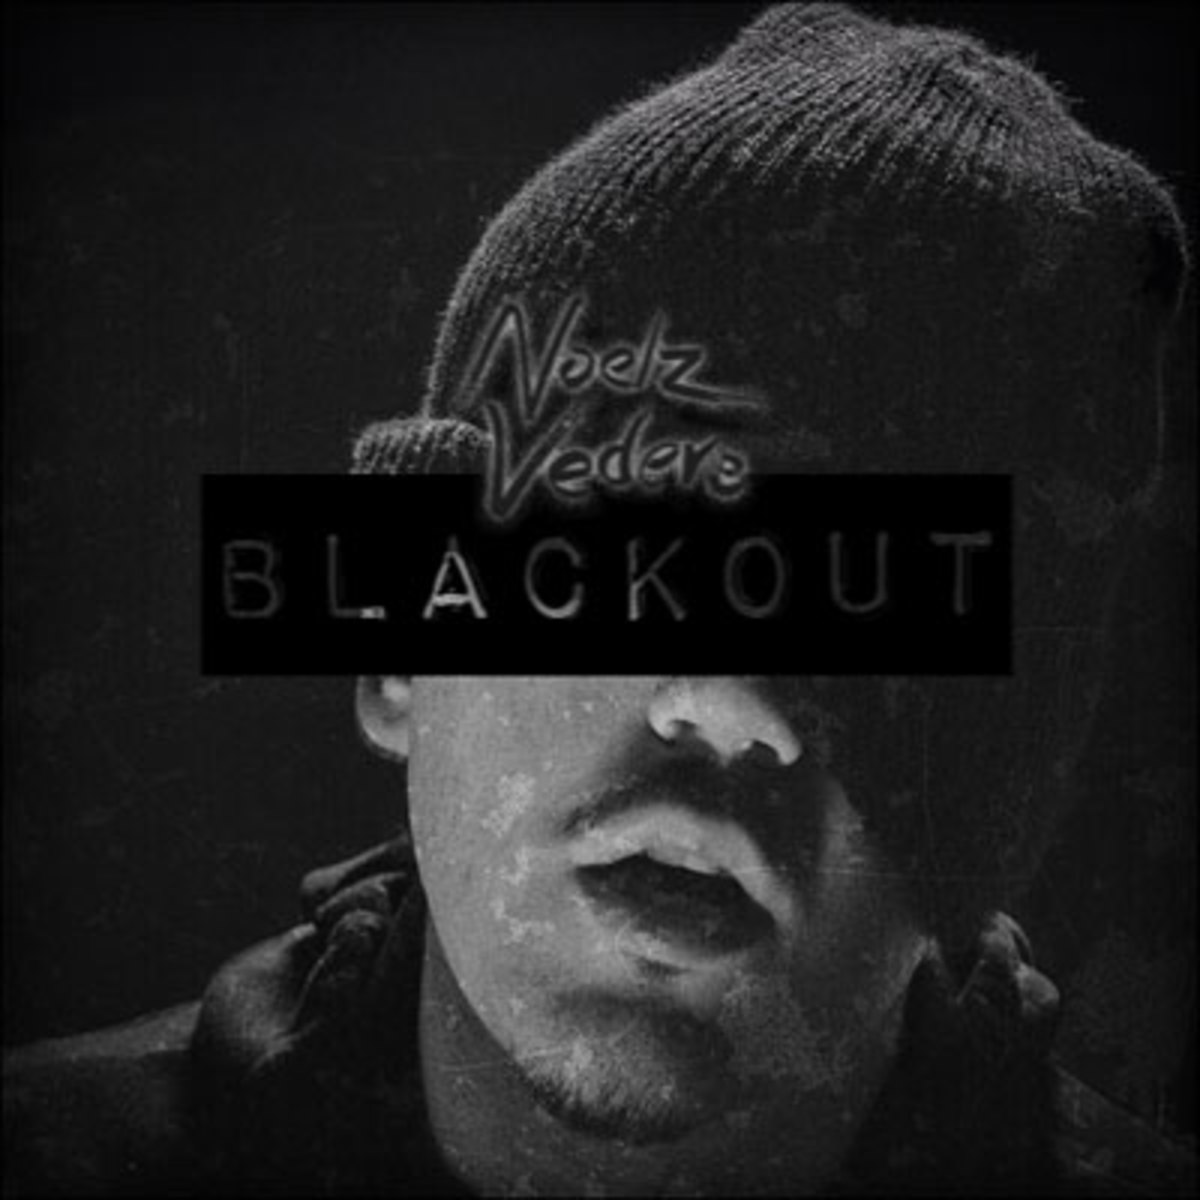 noelzv-blackout.jpg